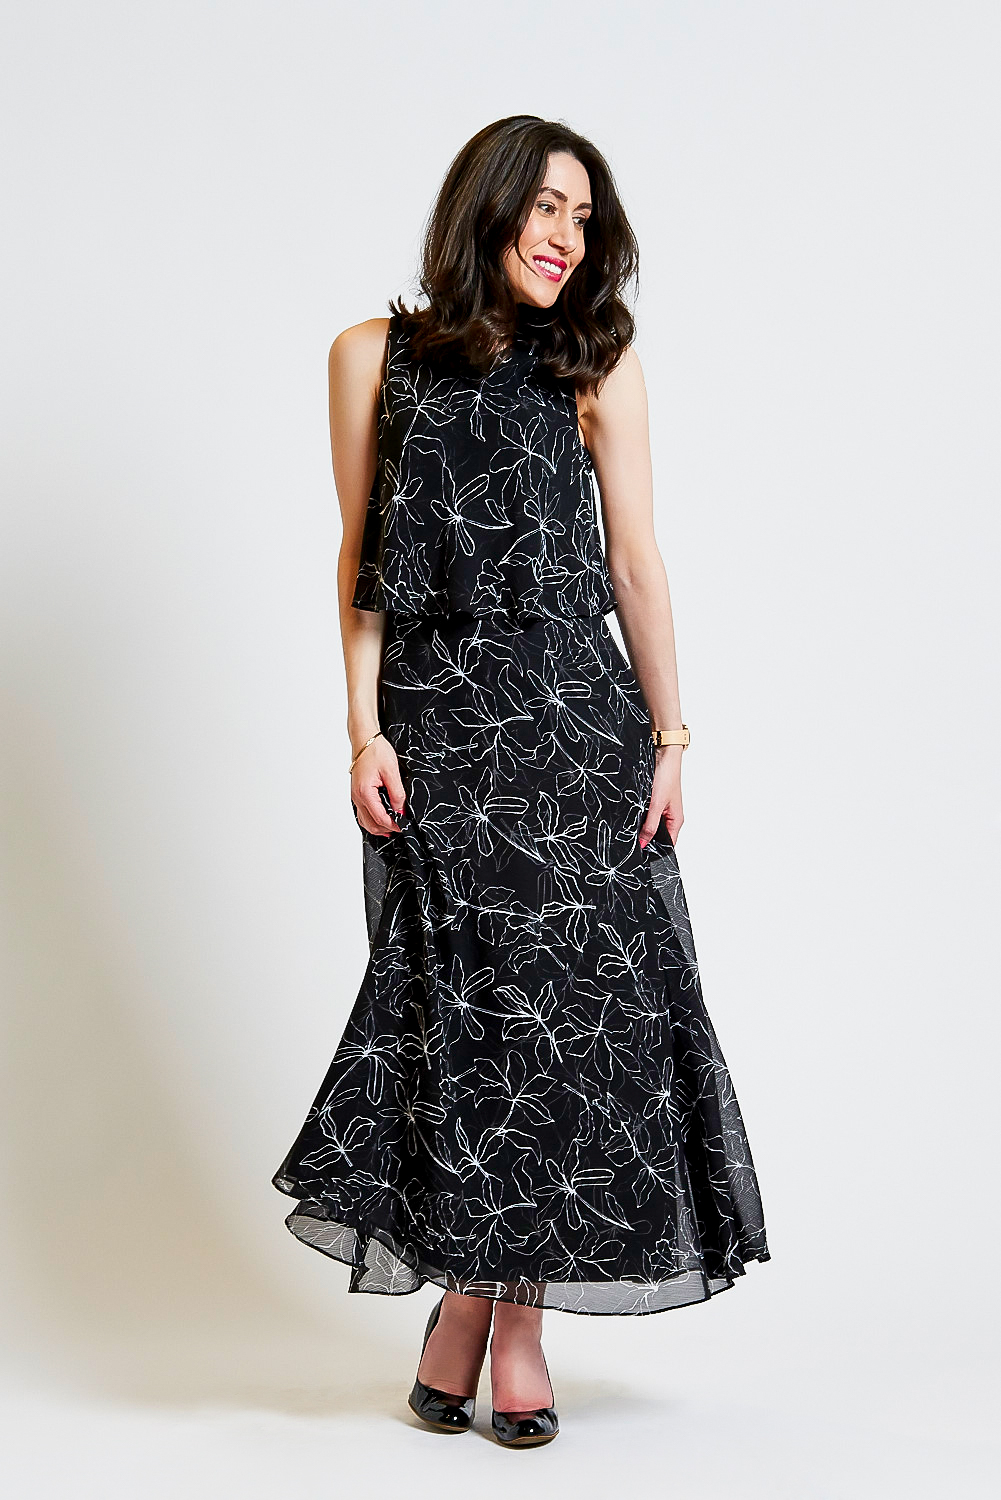 Lisa wears  David Lawrence Floral Double Layer Maxi Dress